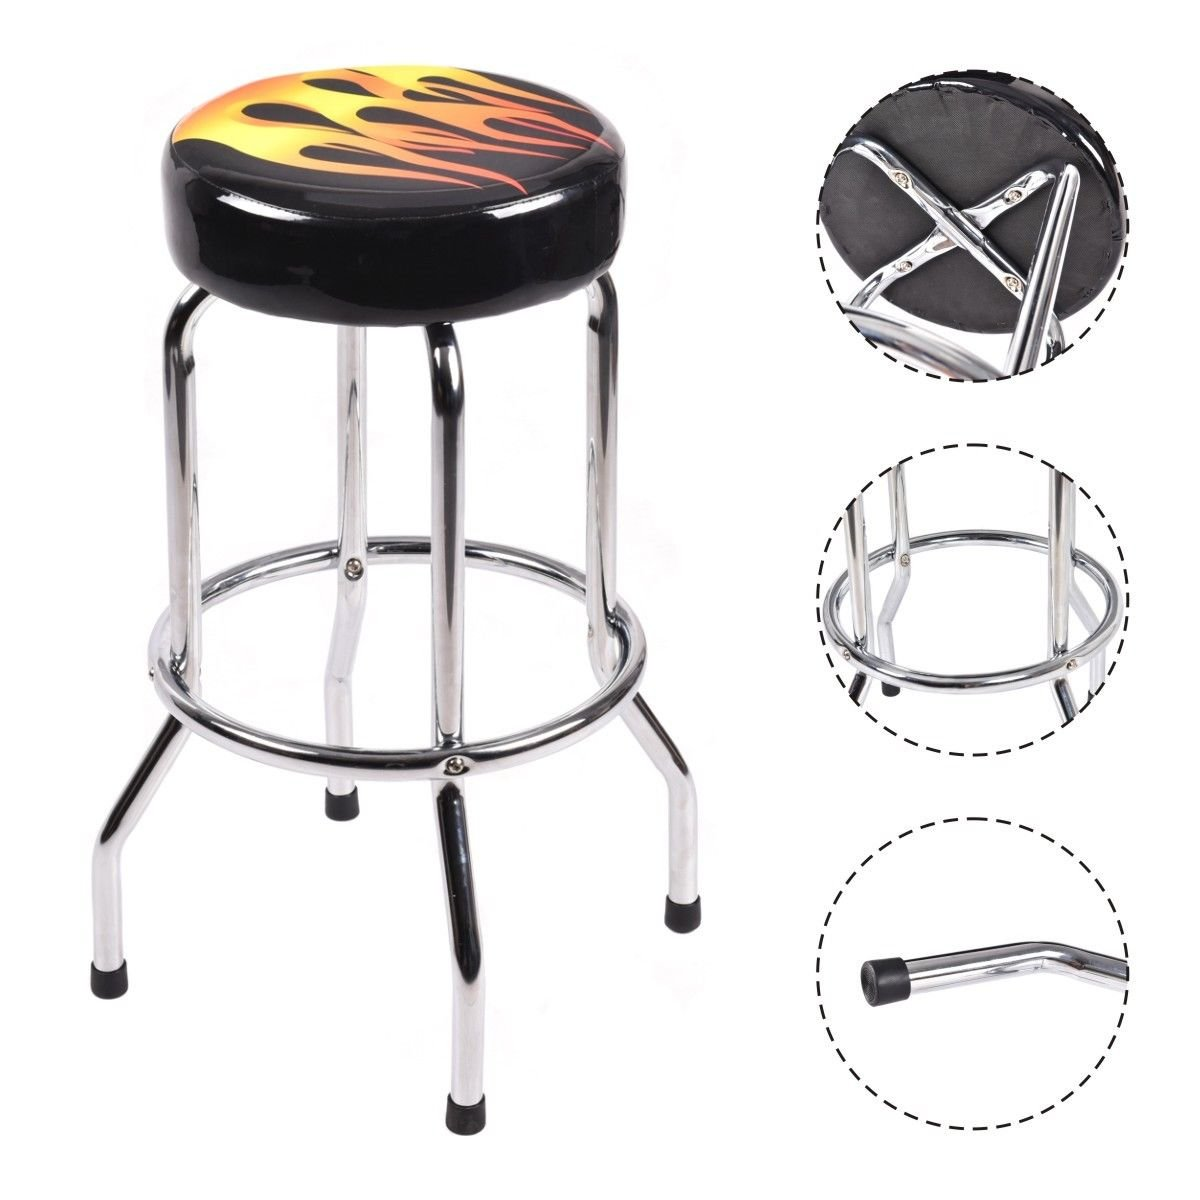 Modern 29'' Counter Height Flame Bar Stool Round Padded Seat Barstool Chair by patcharaporn